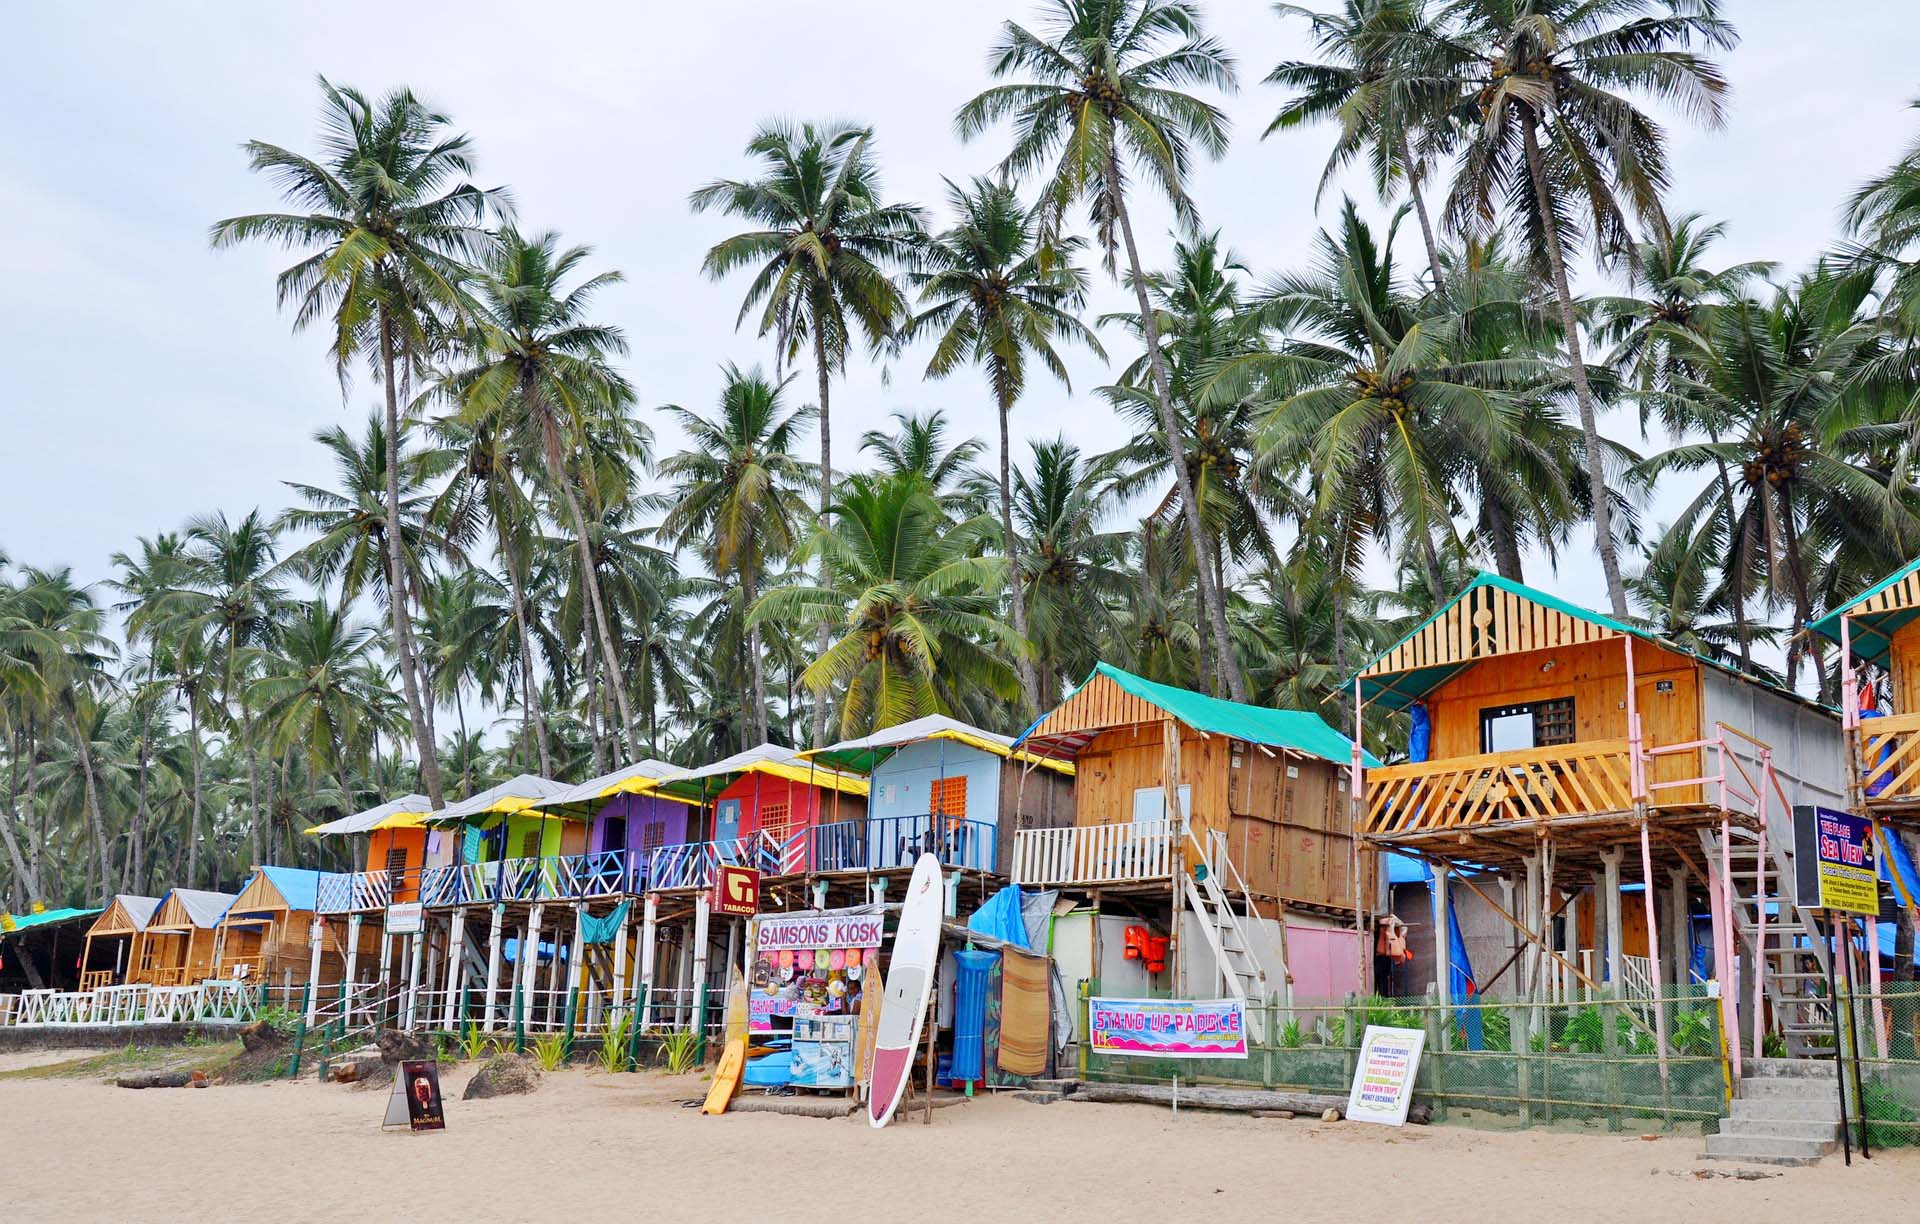 North Goa or South Goa – Best beaches in Goa & Best time to visit